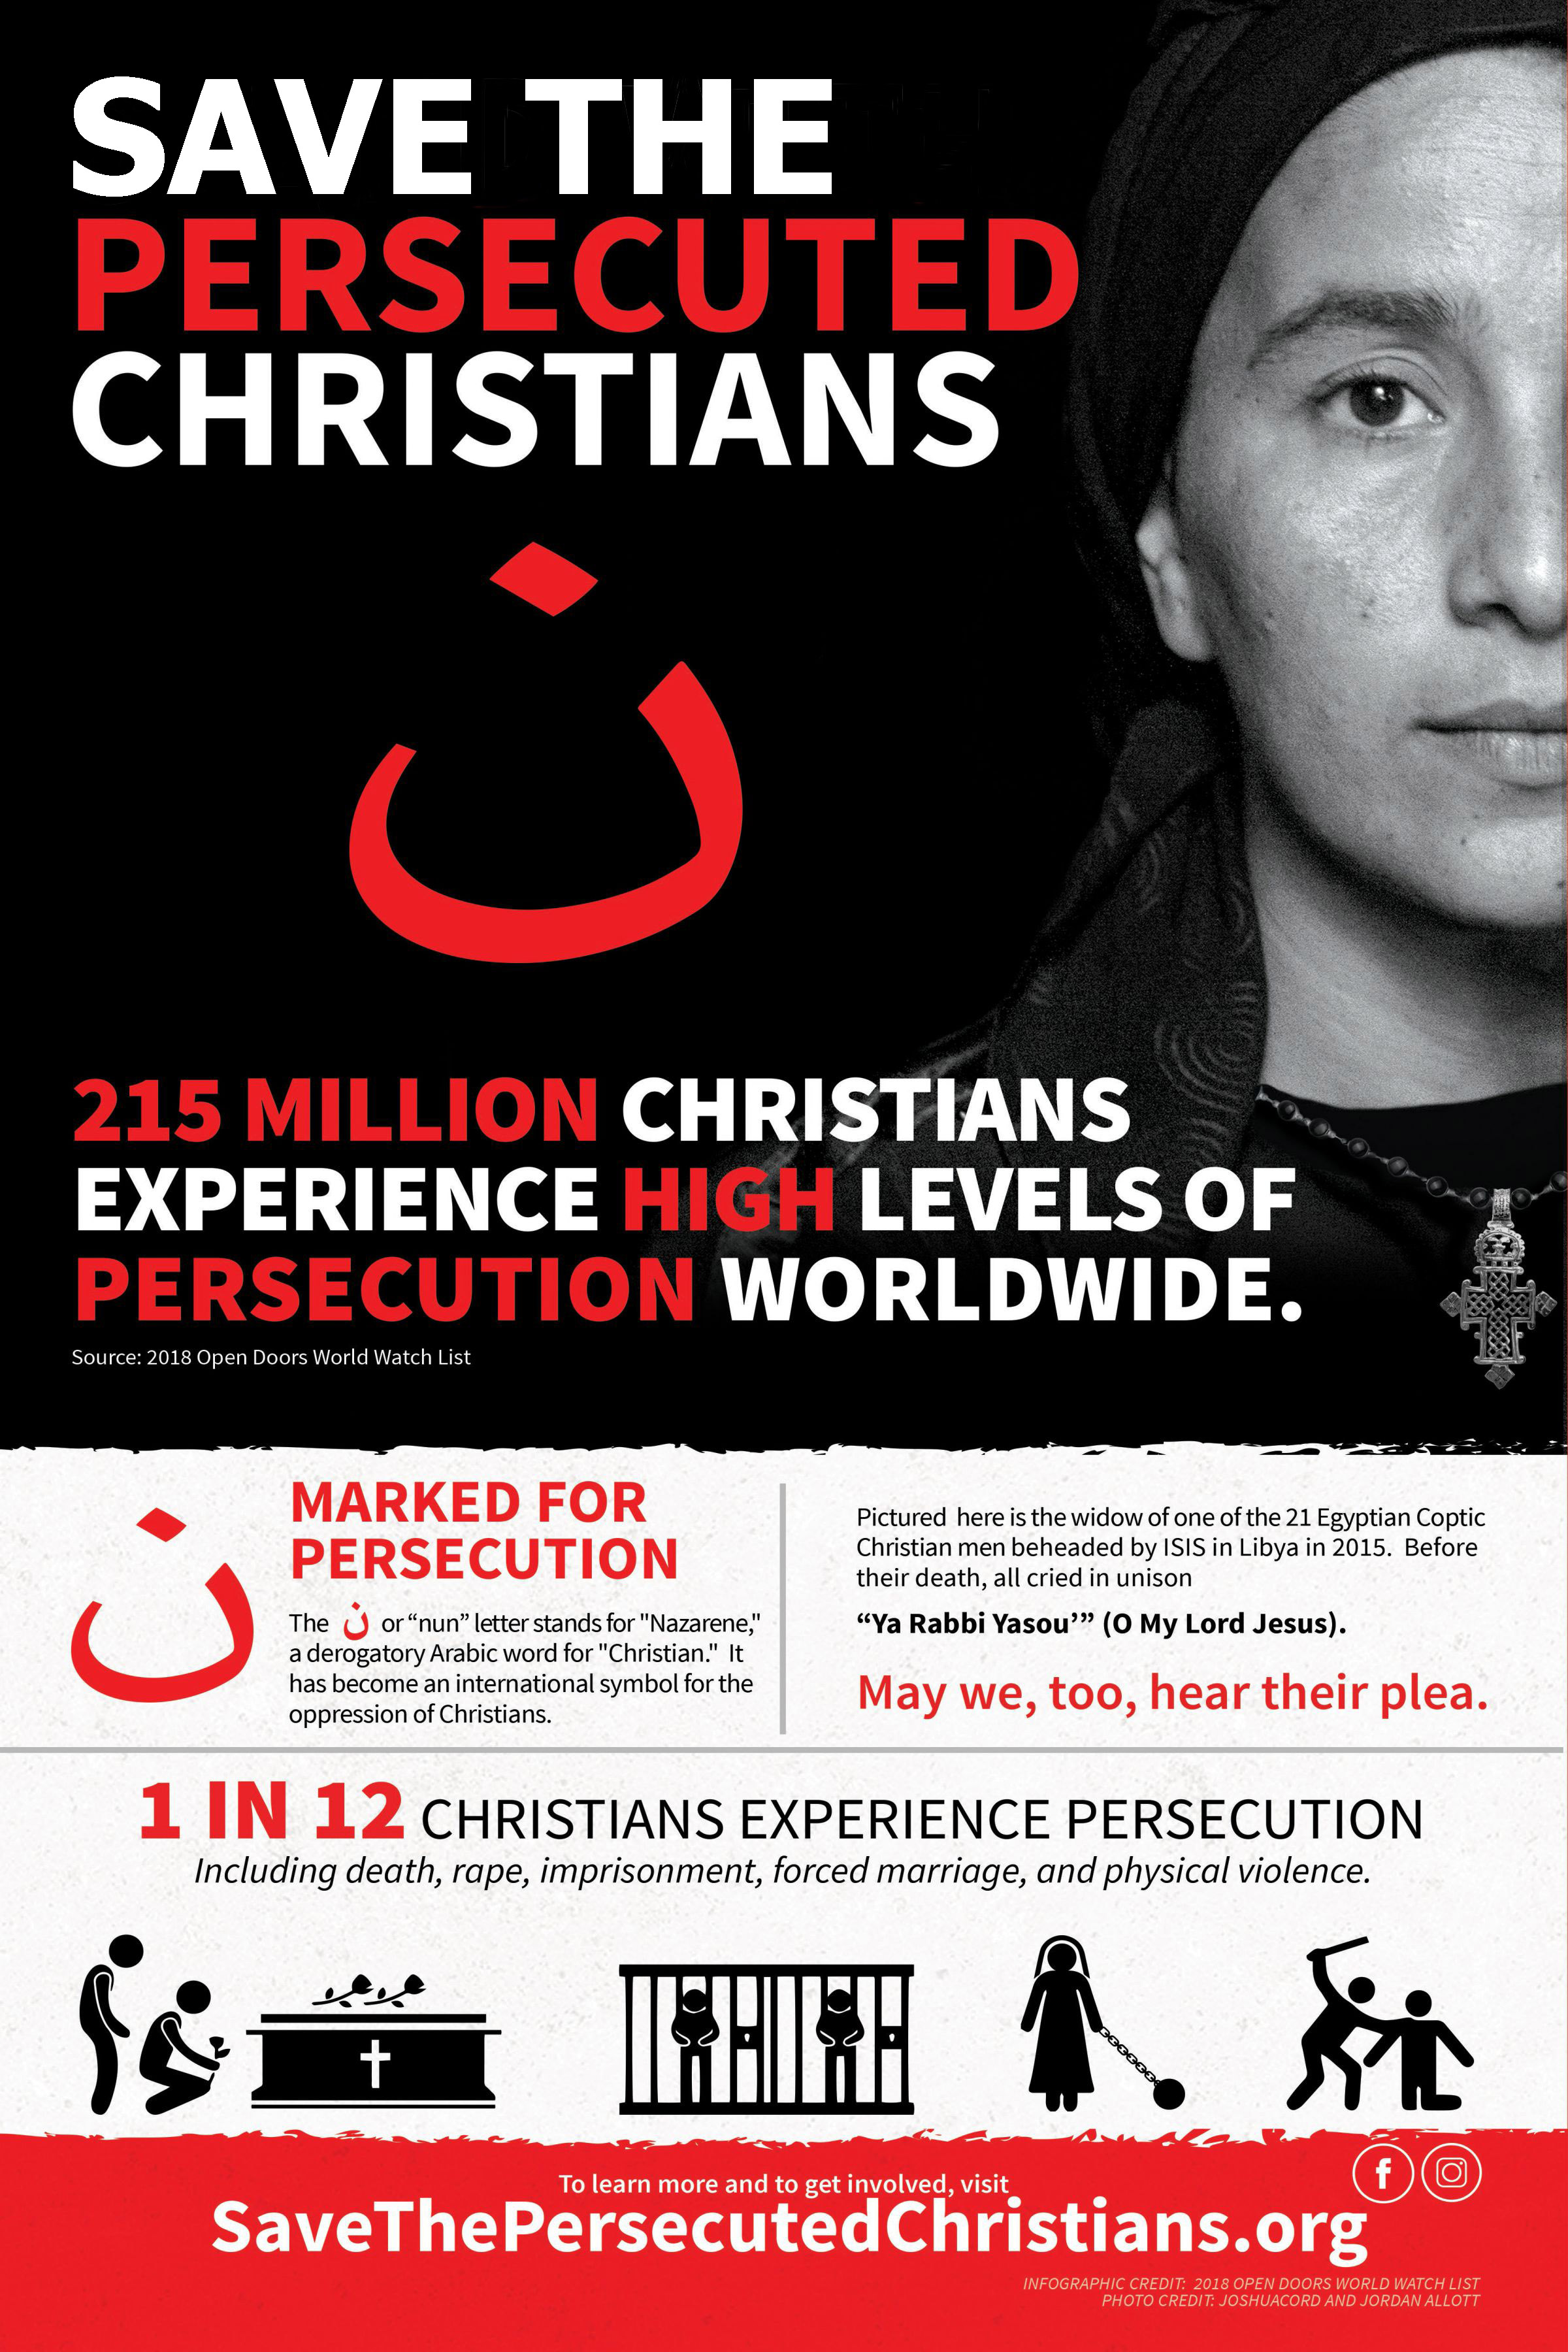 Save the Persecuted Christians poster